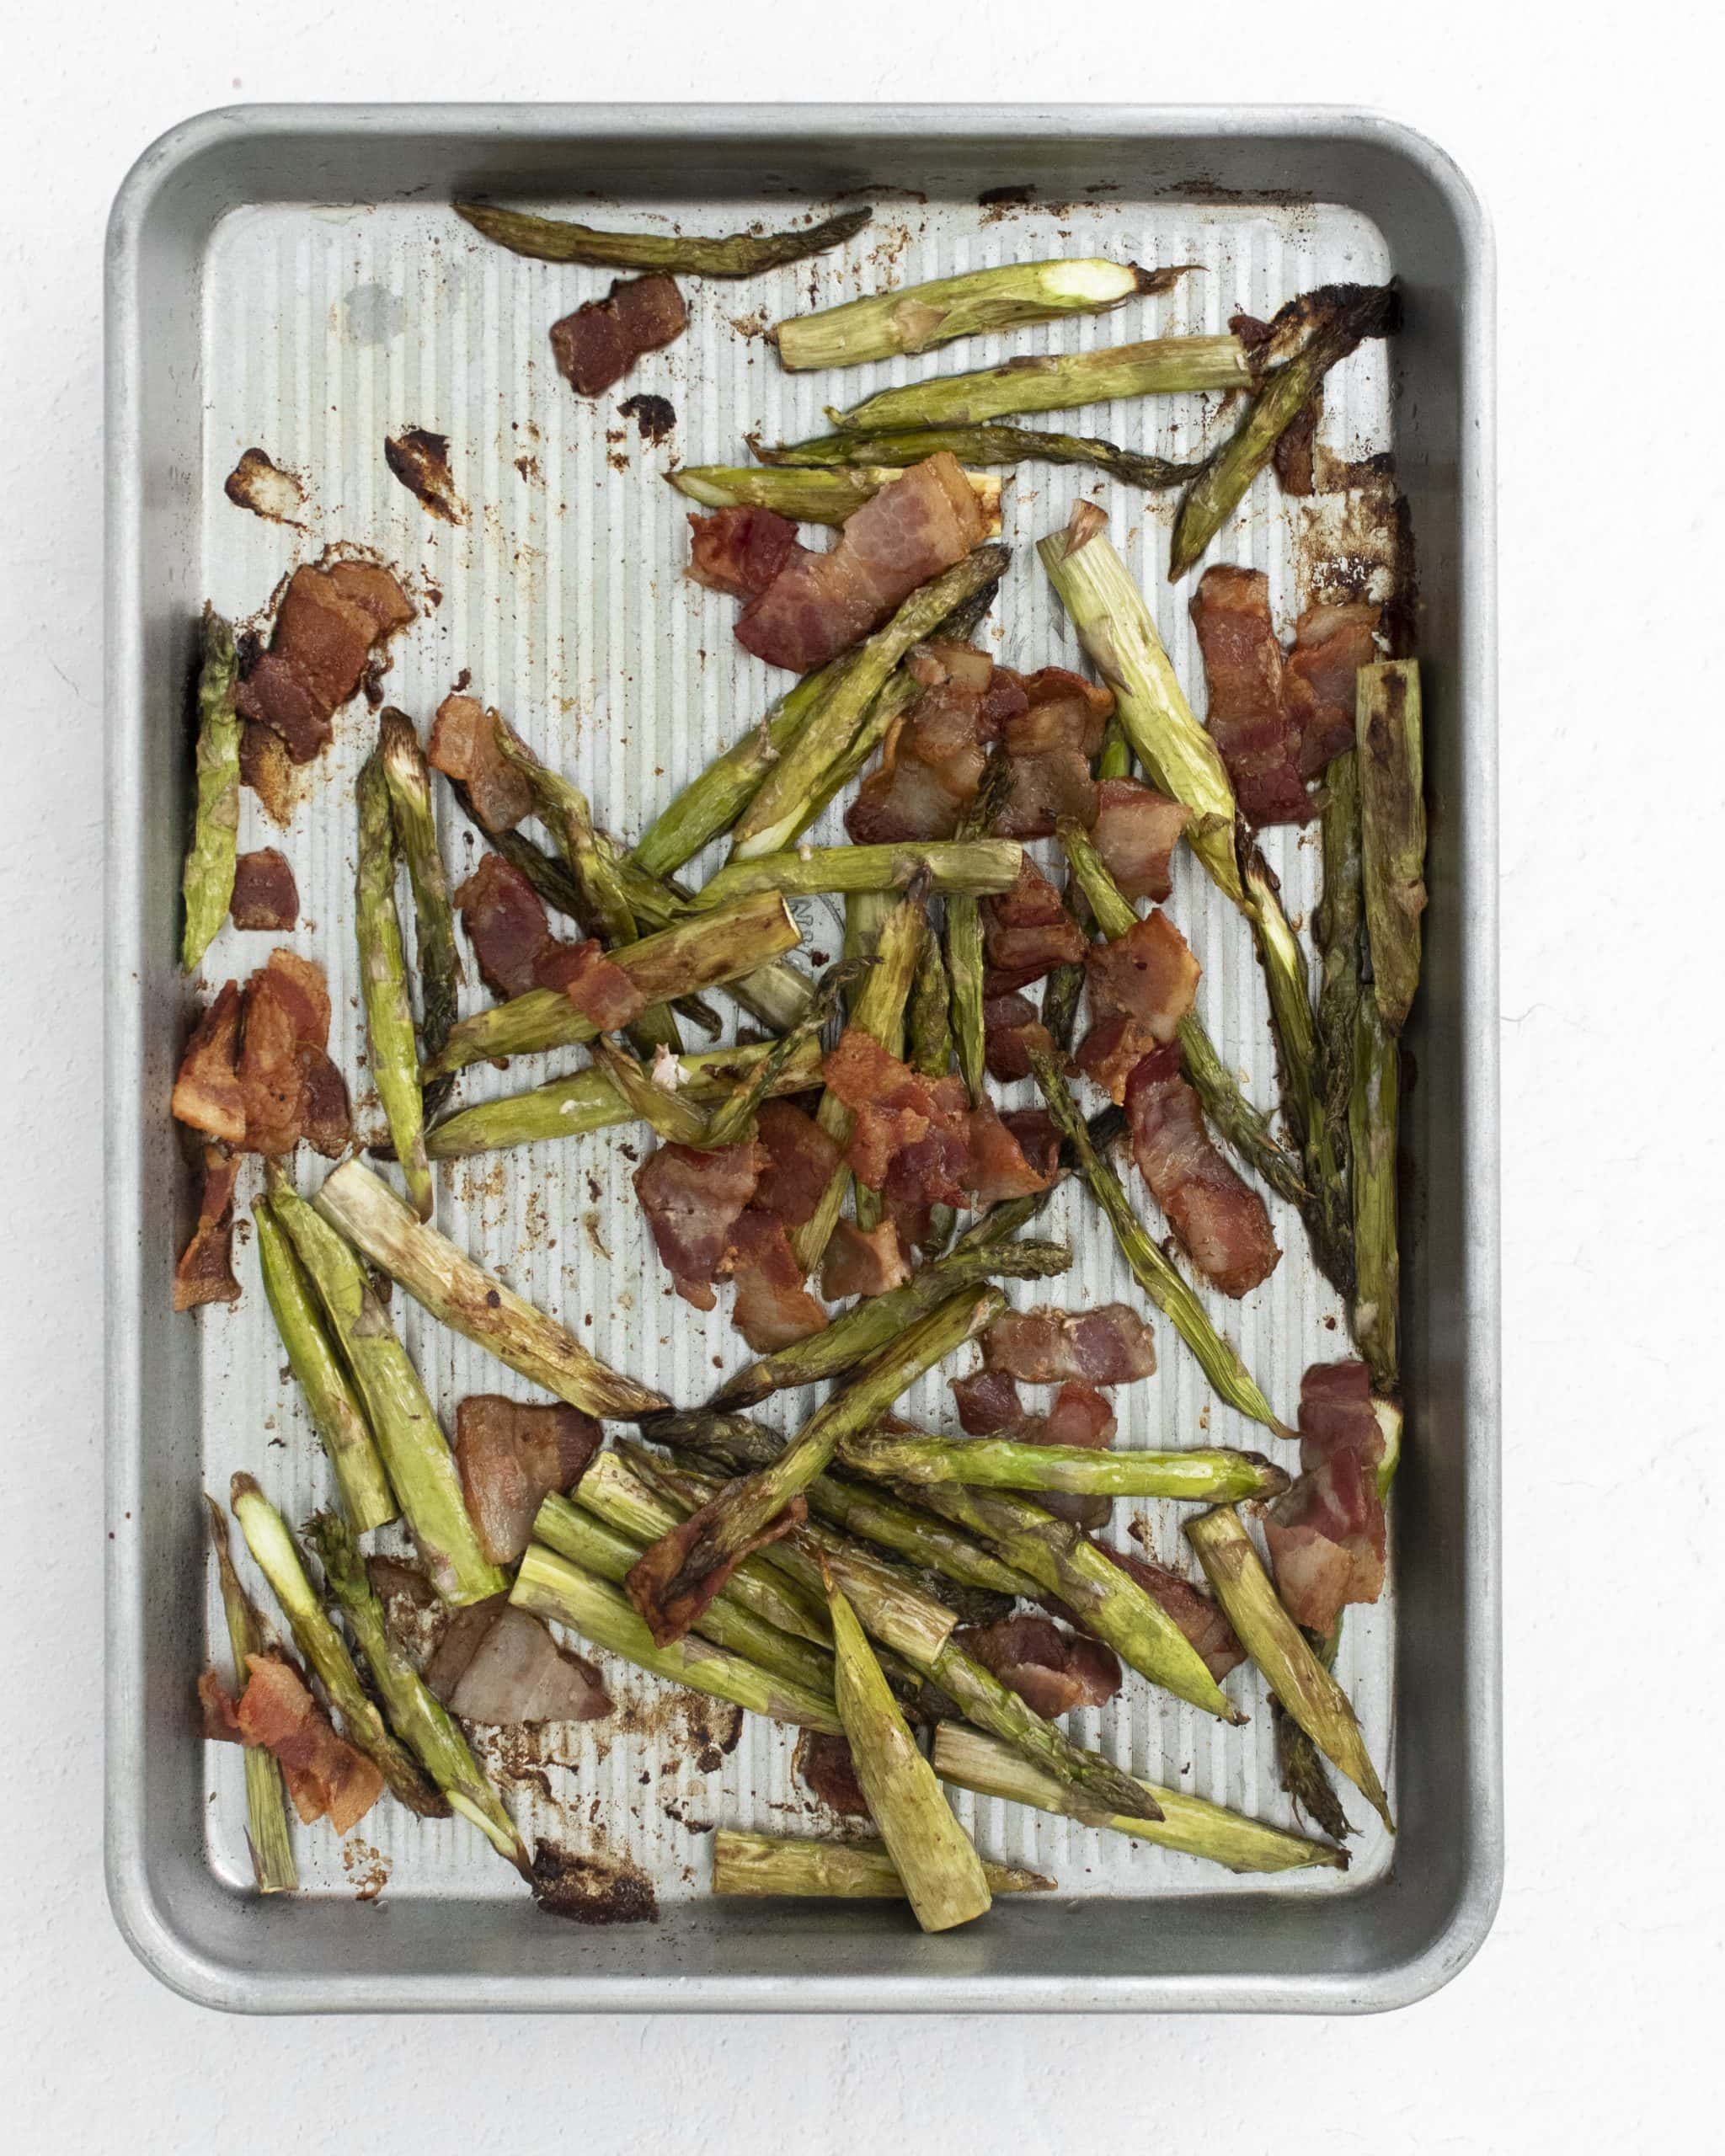 picture of cooked bacon and asparagus on a baking dish